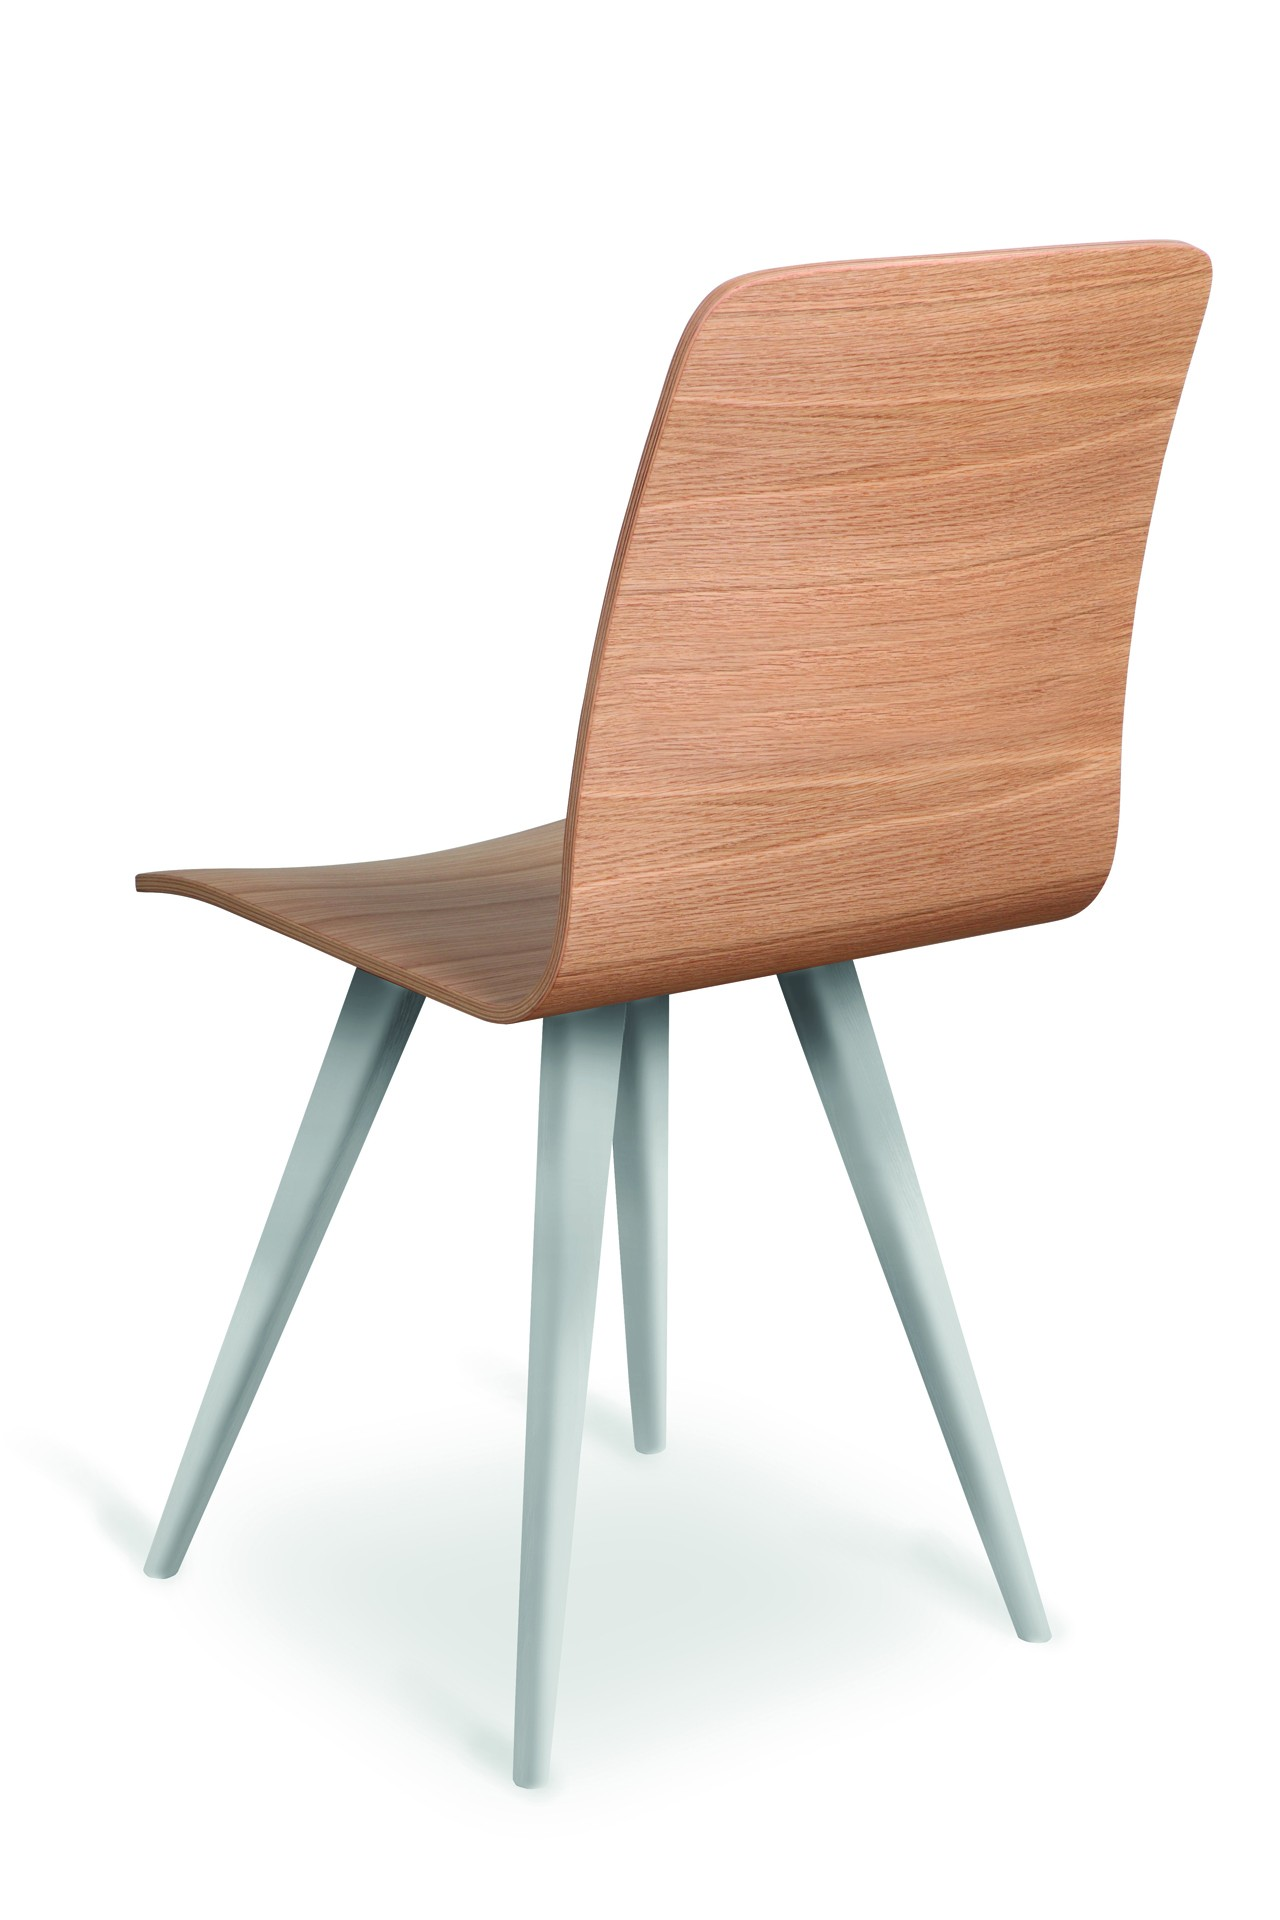 GATTA BIANCA CHAIR wholly wooden